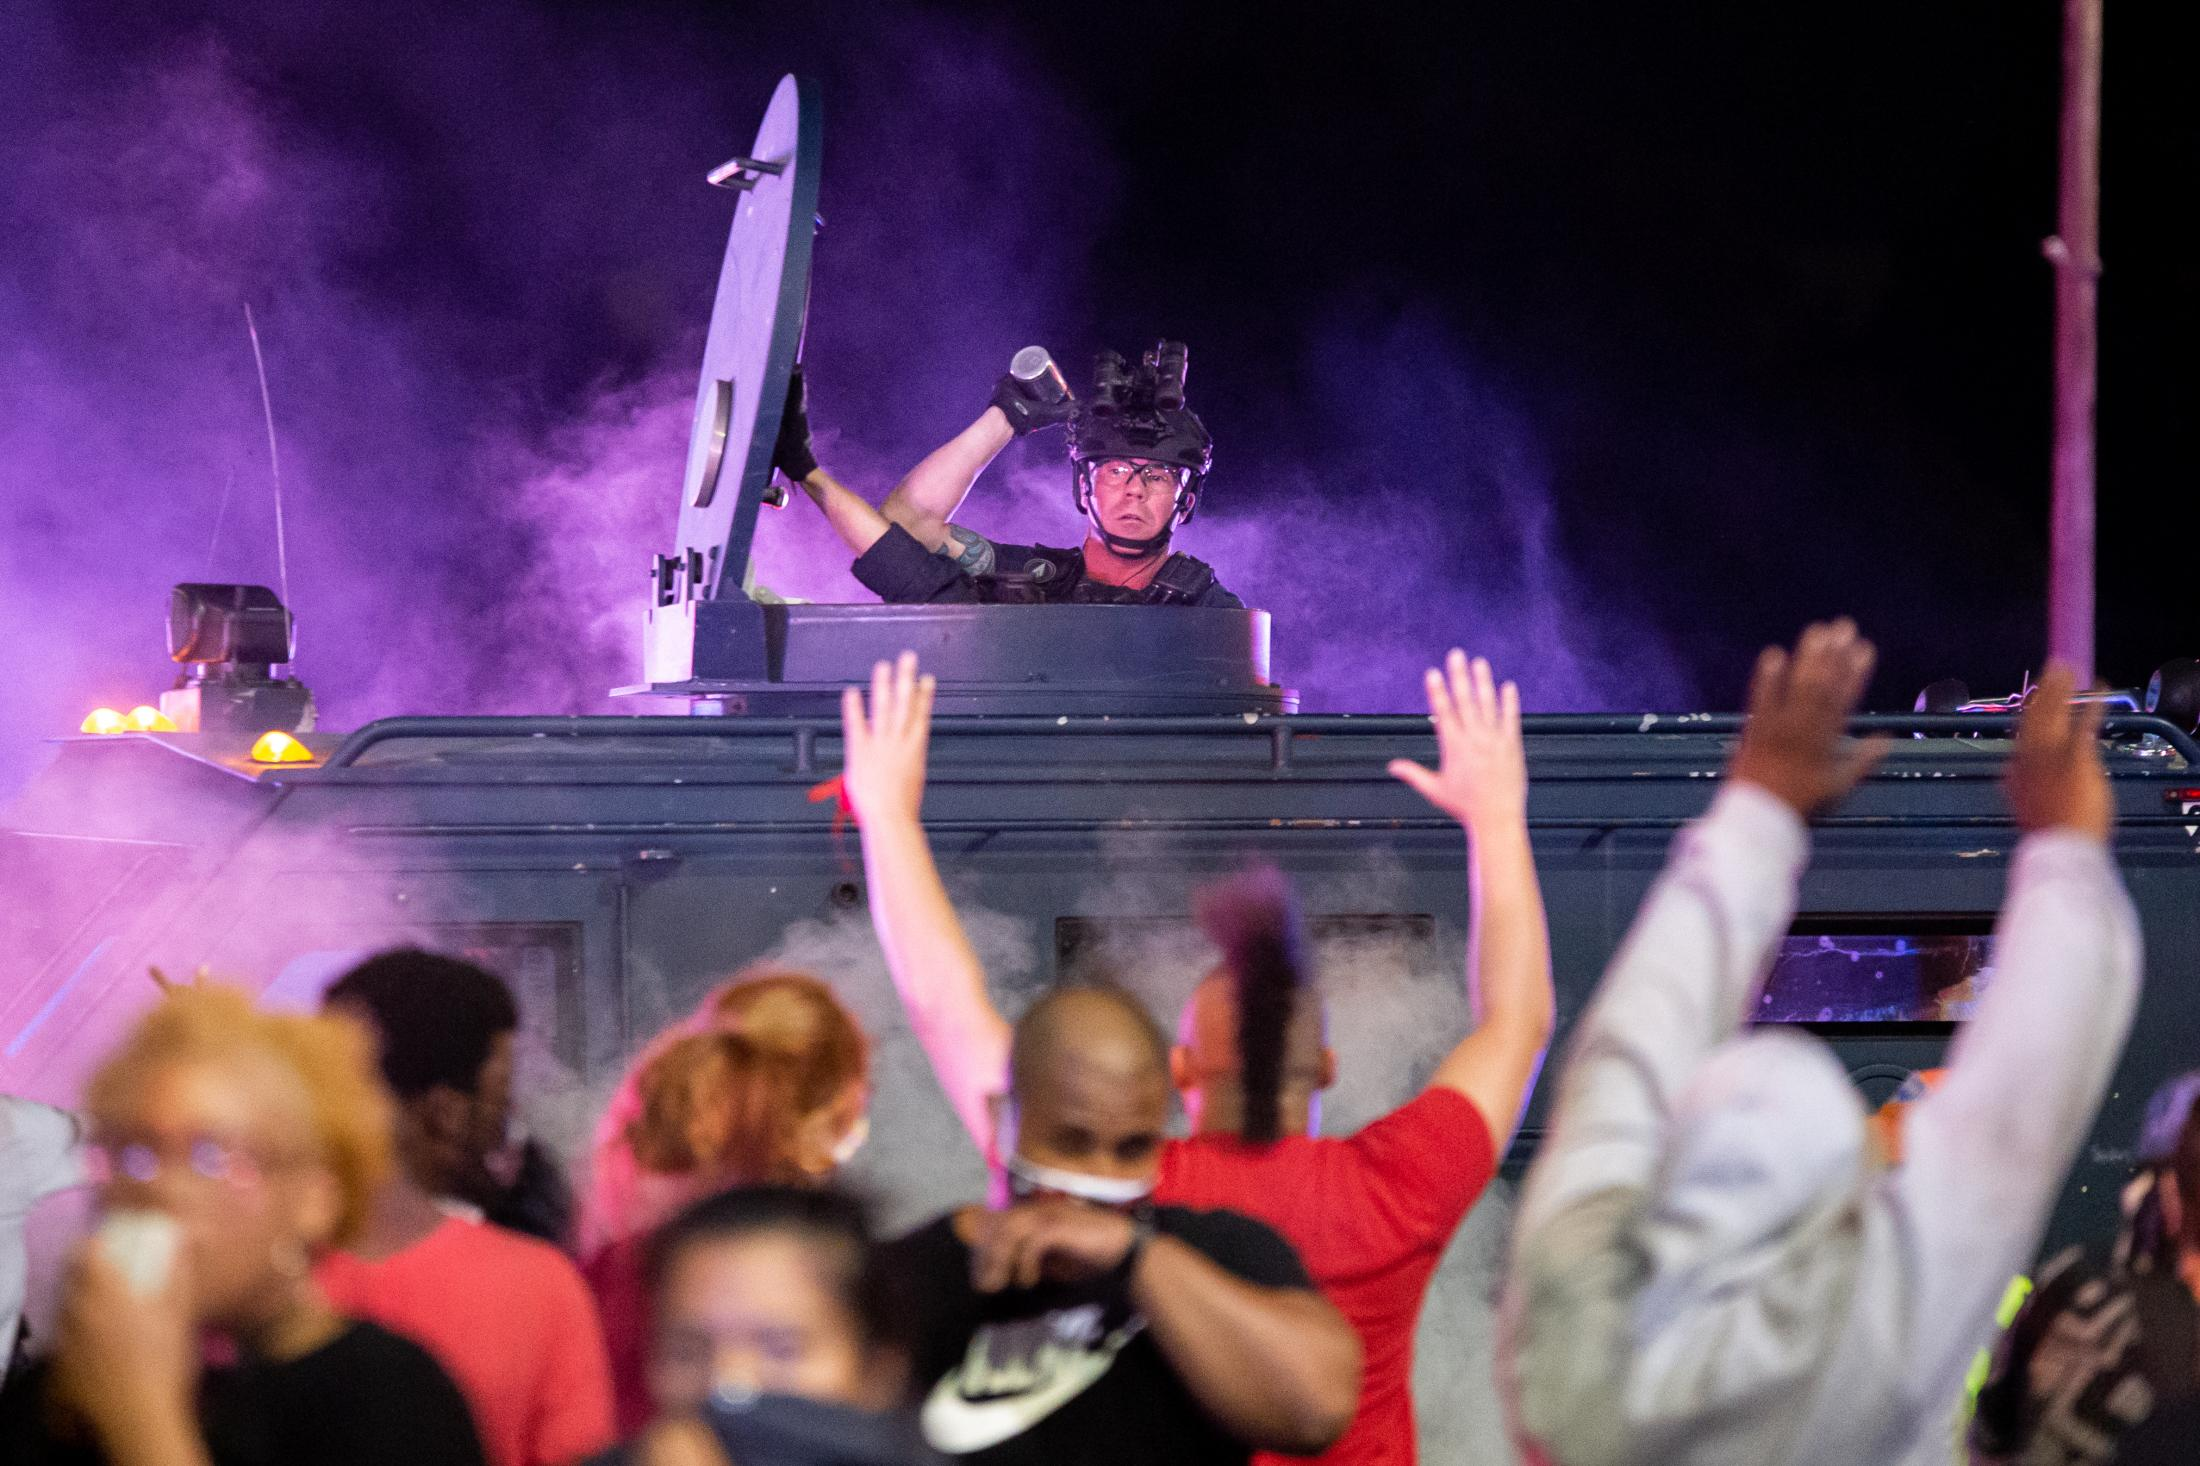 A Dallas Police officer opened the top hatch of the armored vehicle and threw multiple grenades of tear gas at the crowd of protestors.